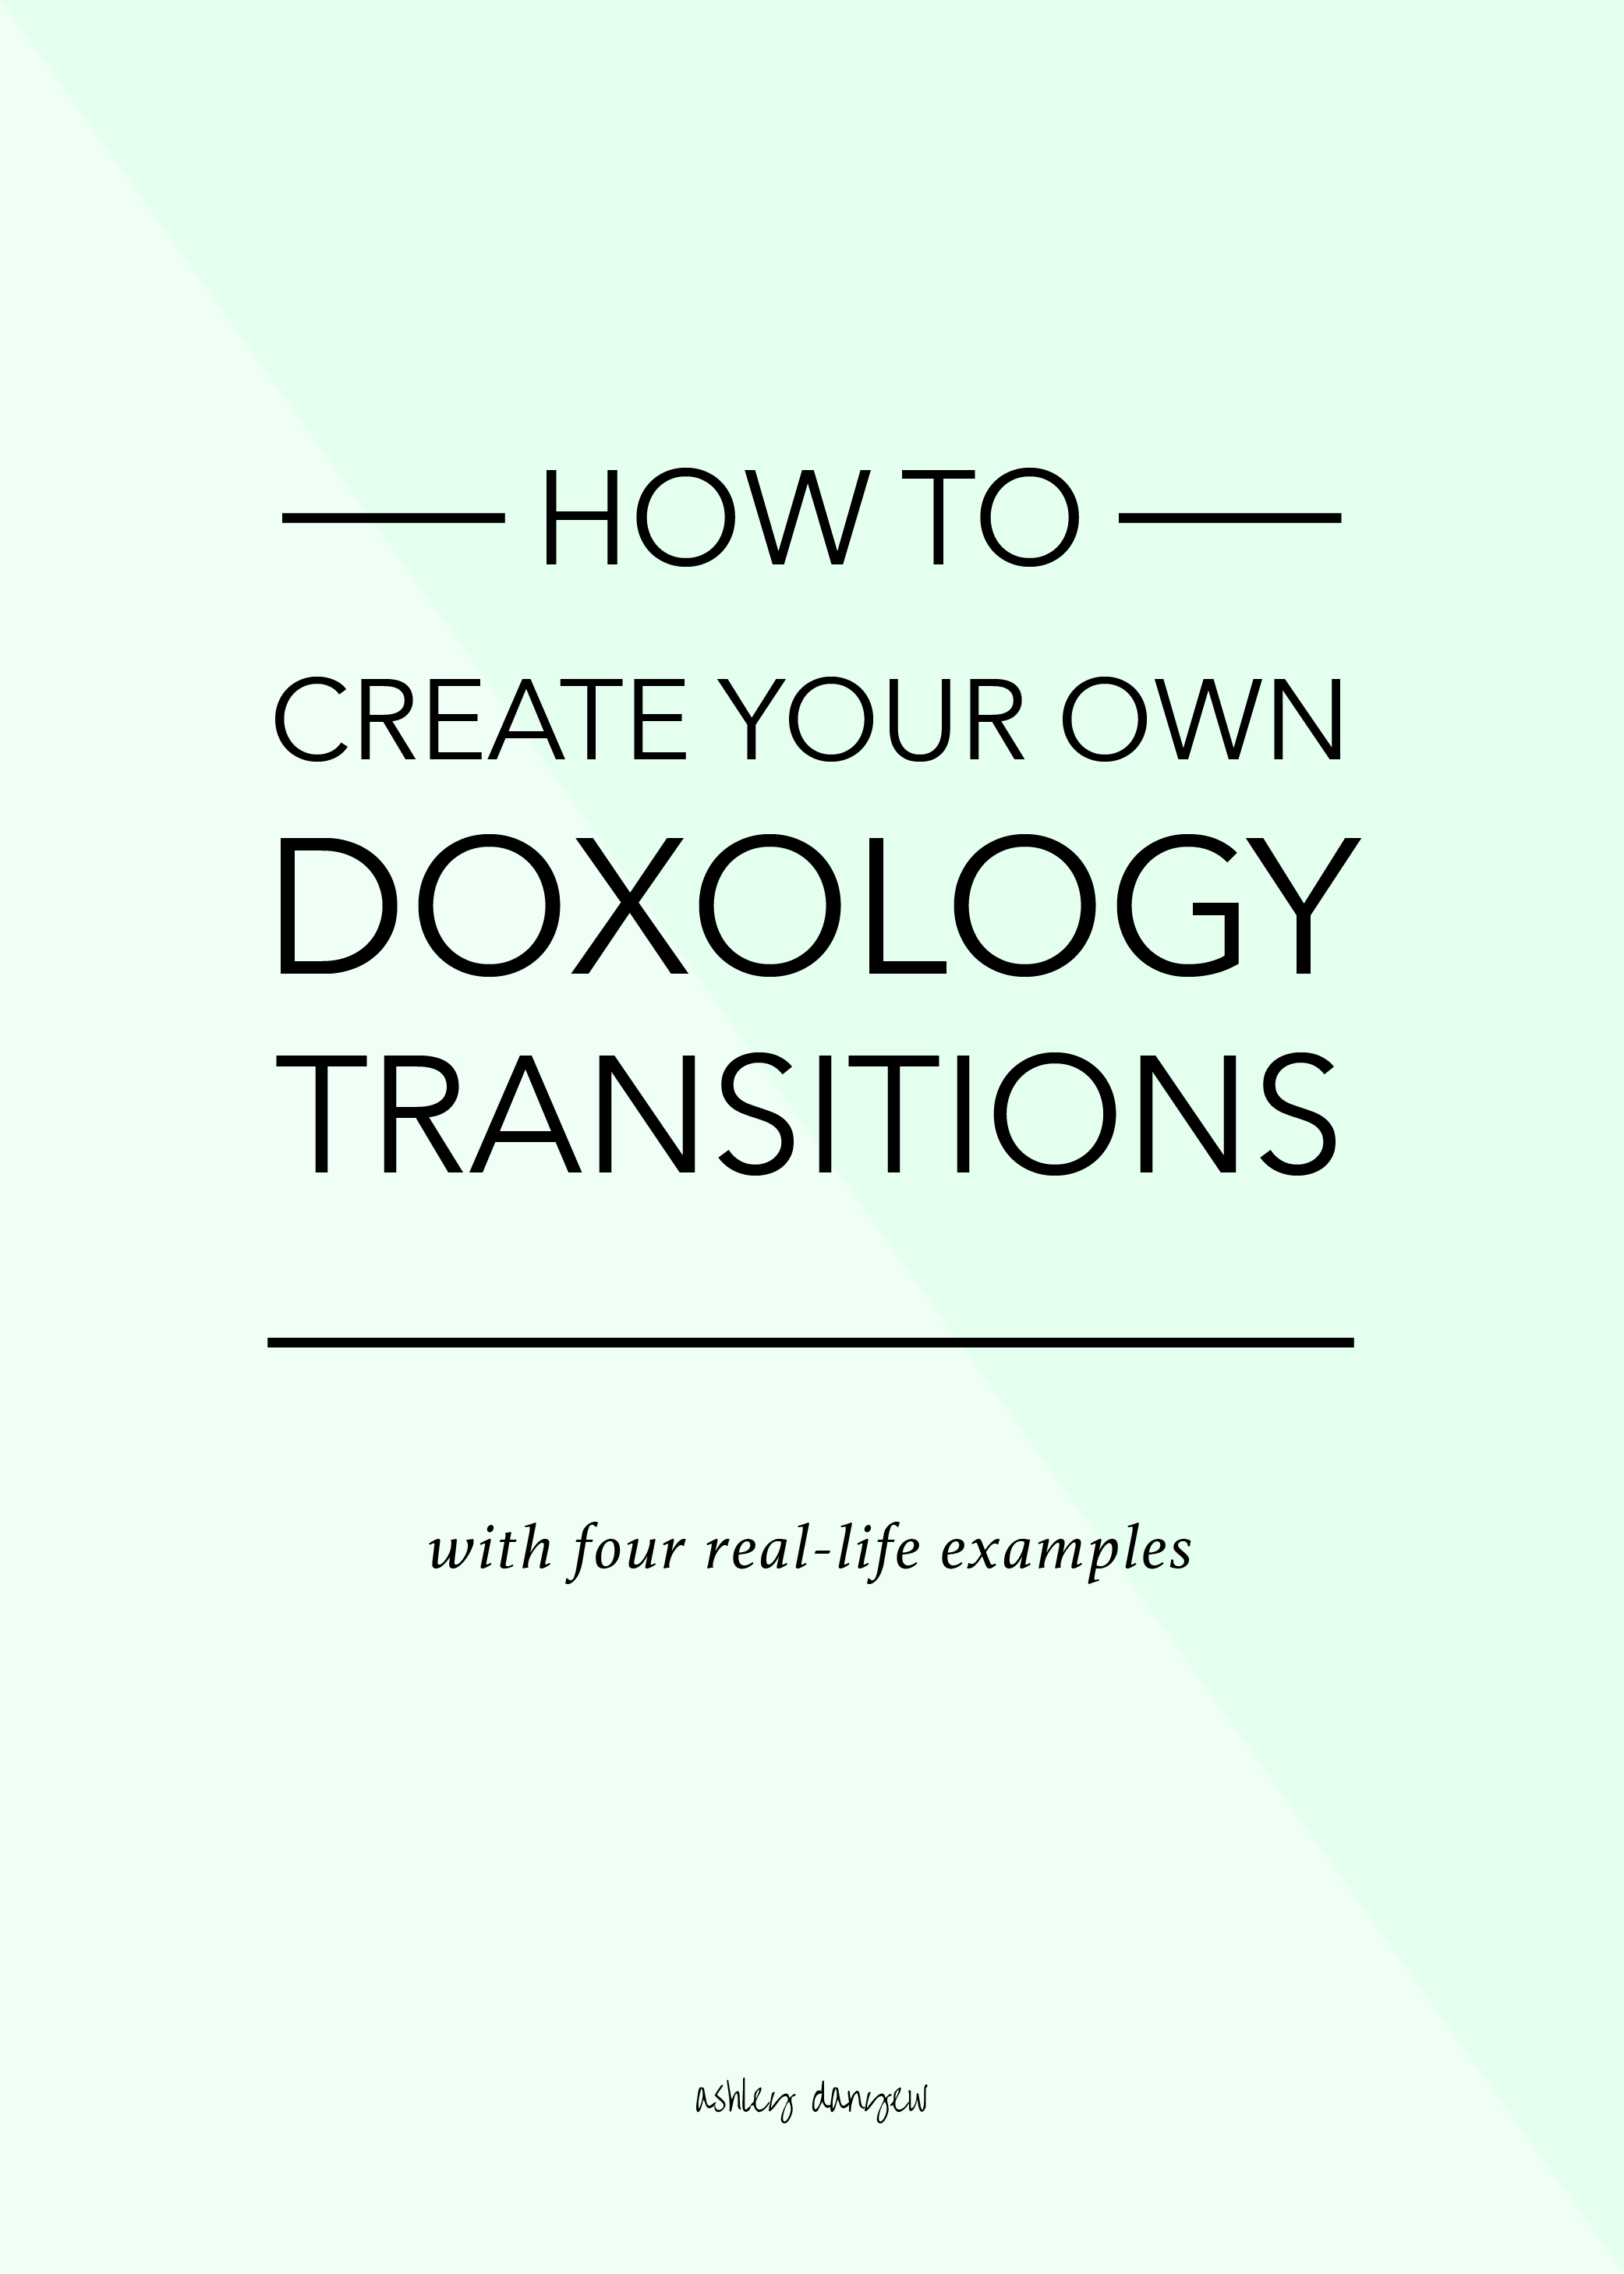 How to create your own Doxology transitions (with four real-life examples) | @ashleydanyew